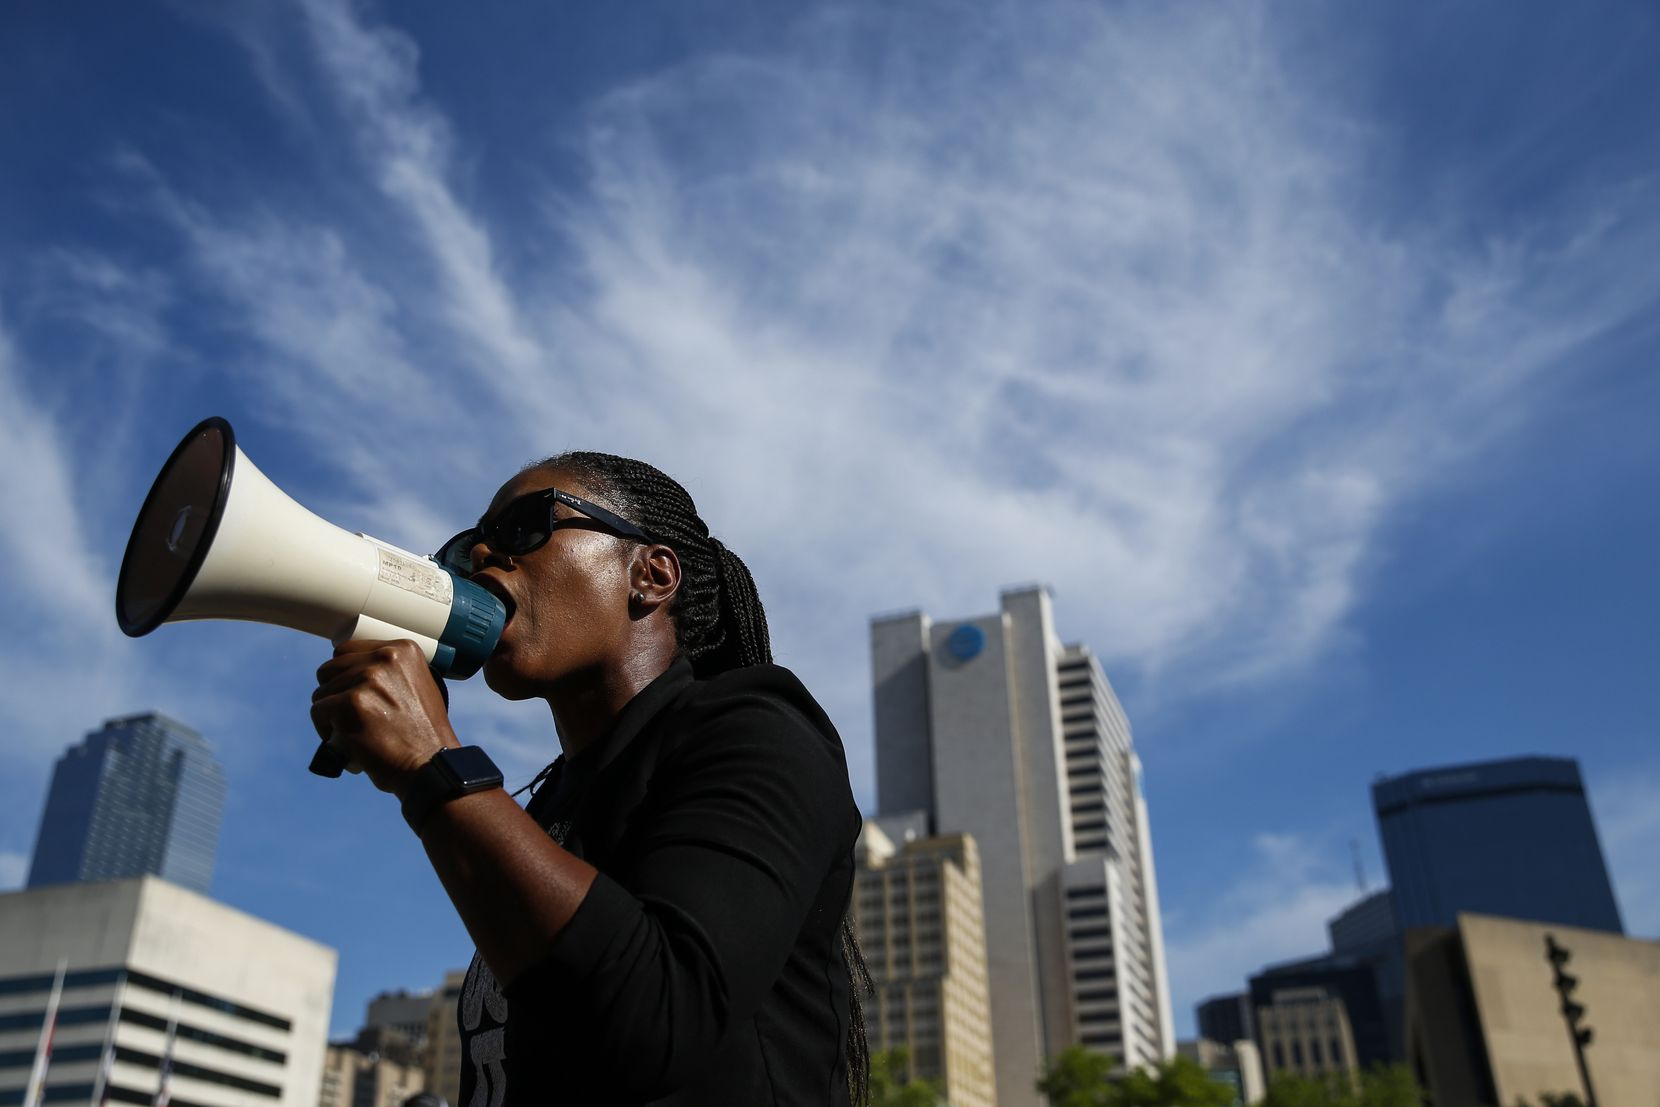 Shenita Cleveland calls to Mayor Eric Johnson for policy changes following a memorial service for George Floyd on Friday, June 5, 2020 at City Hall in Dallas.